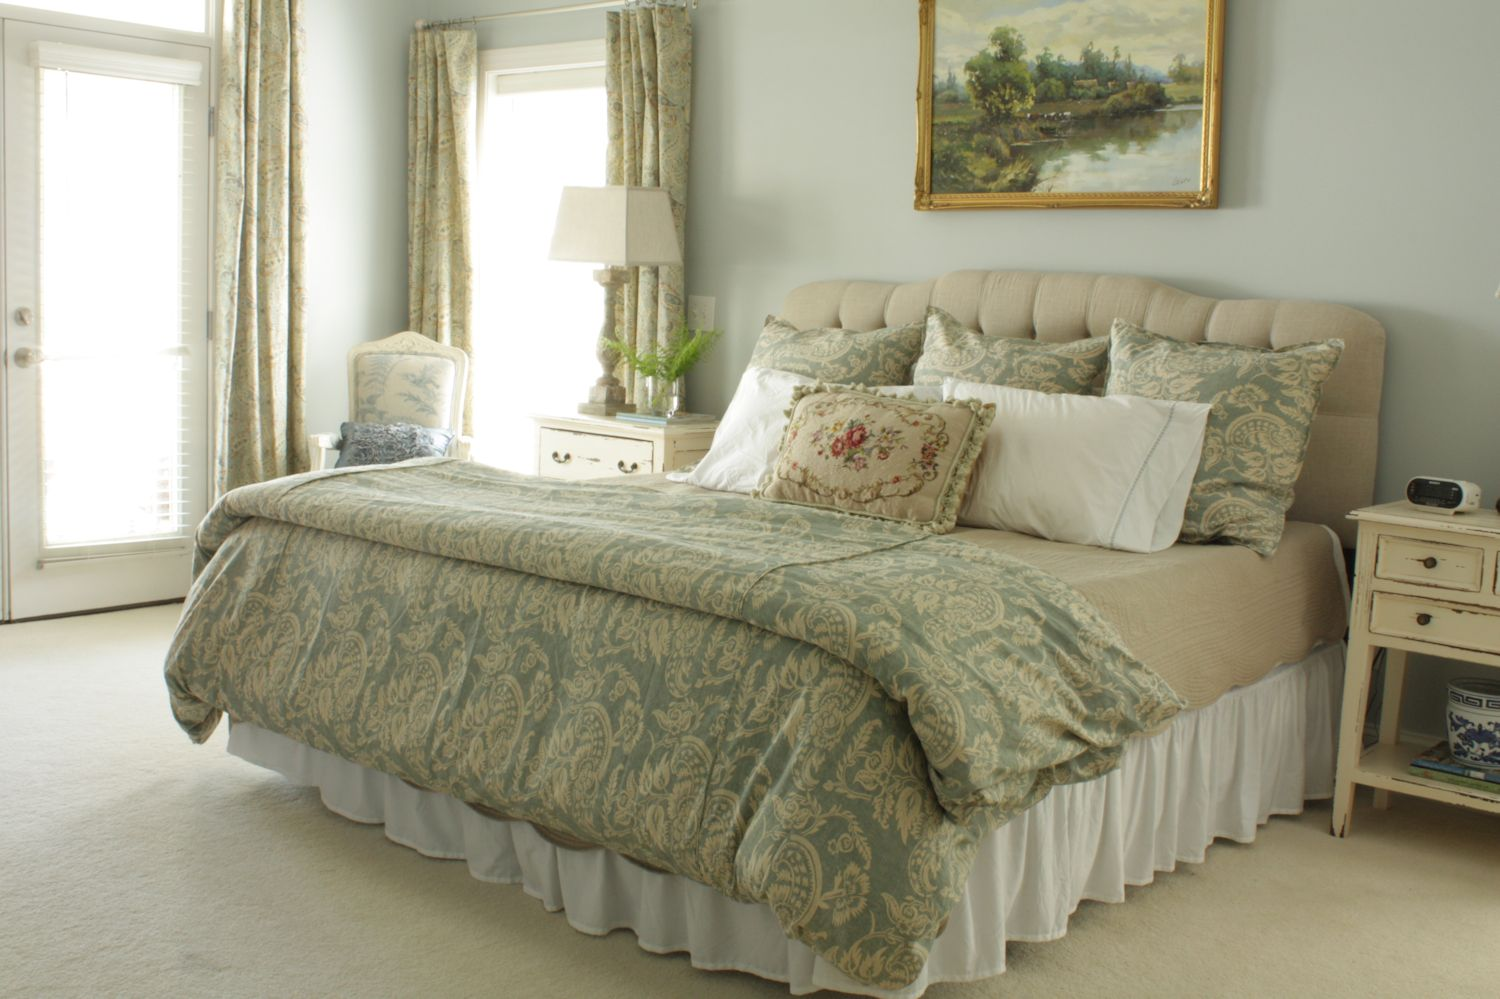 The comforts of home master bedroom tour Master bedroom with drapes